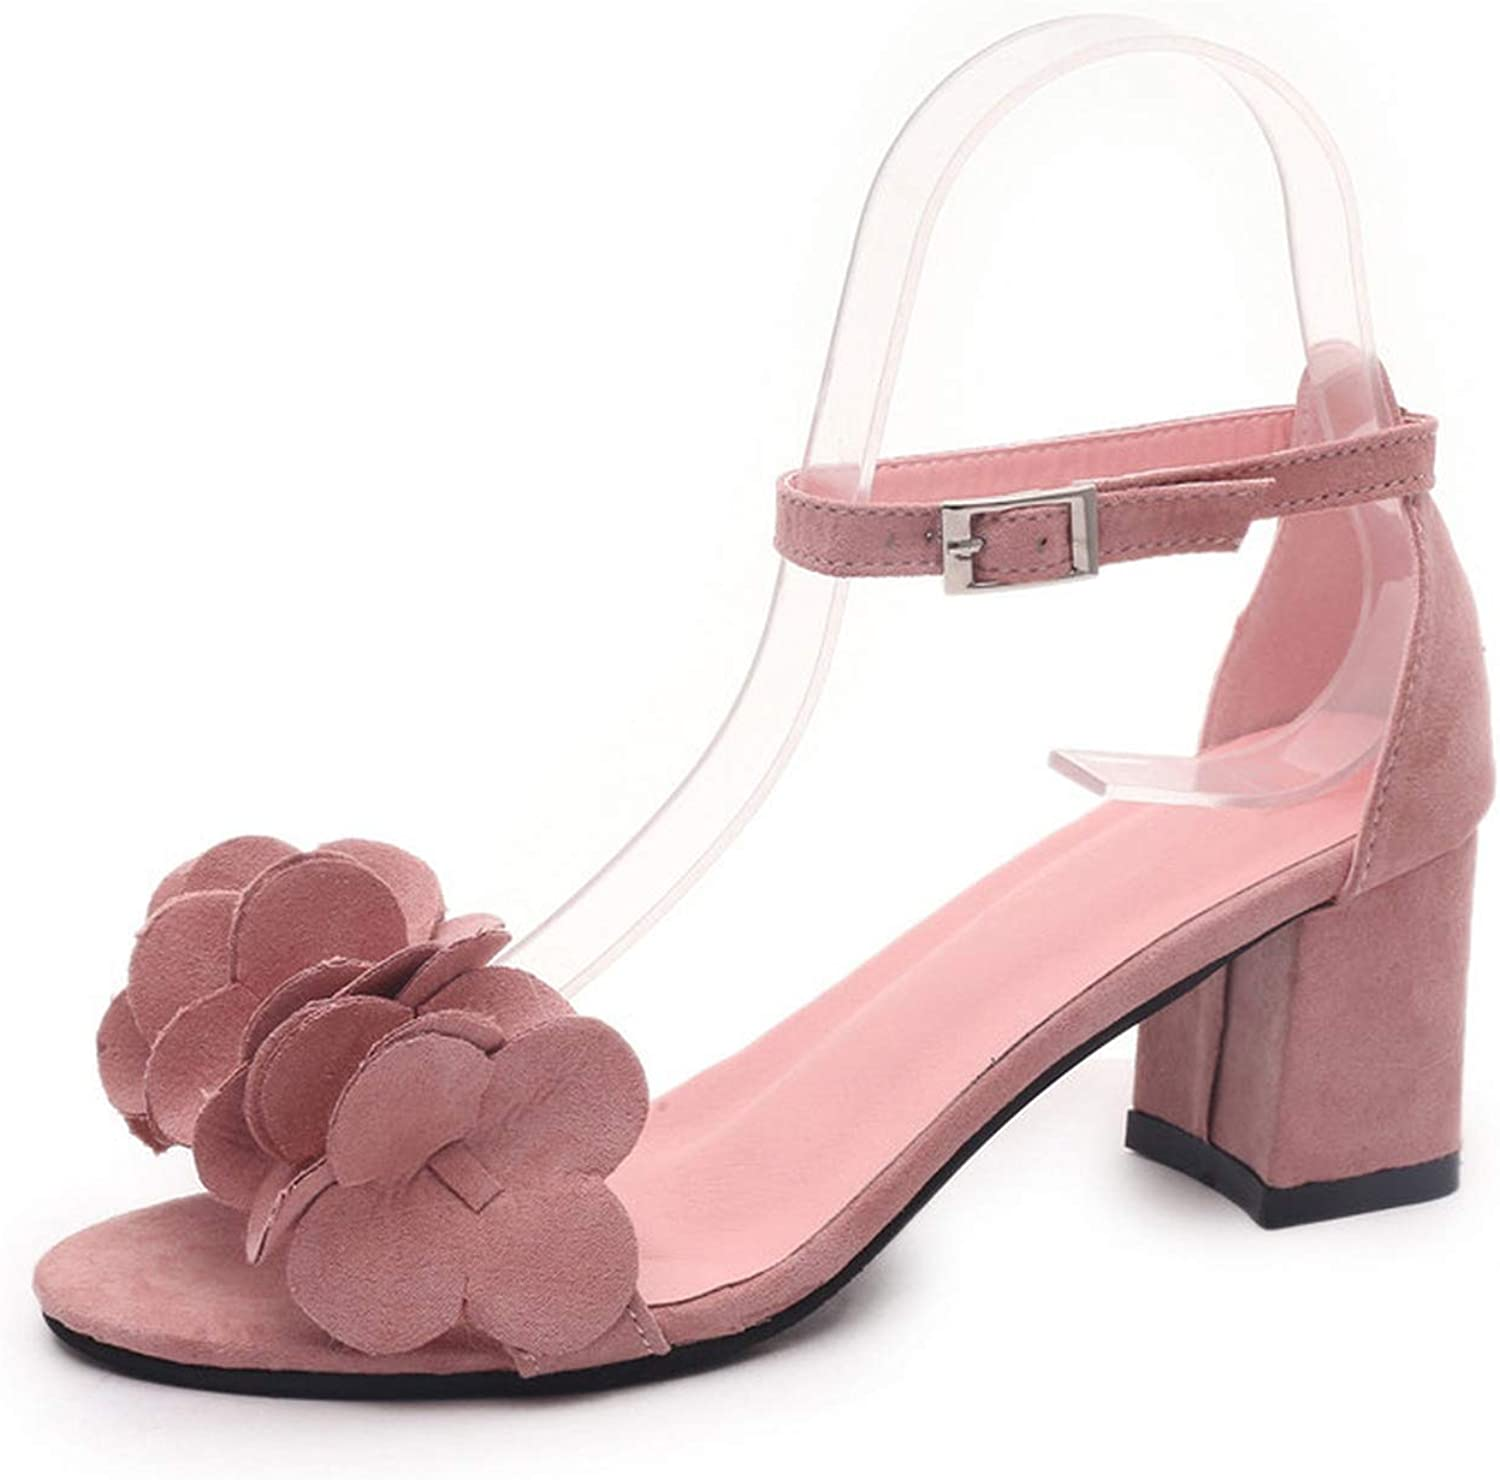 Heat-Tracing Women's Fashion Solid color Ladies shoes Wild Flowers Non-Slip Wedding Sandals